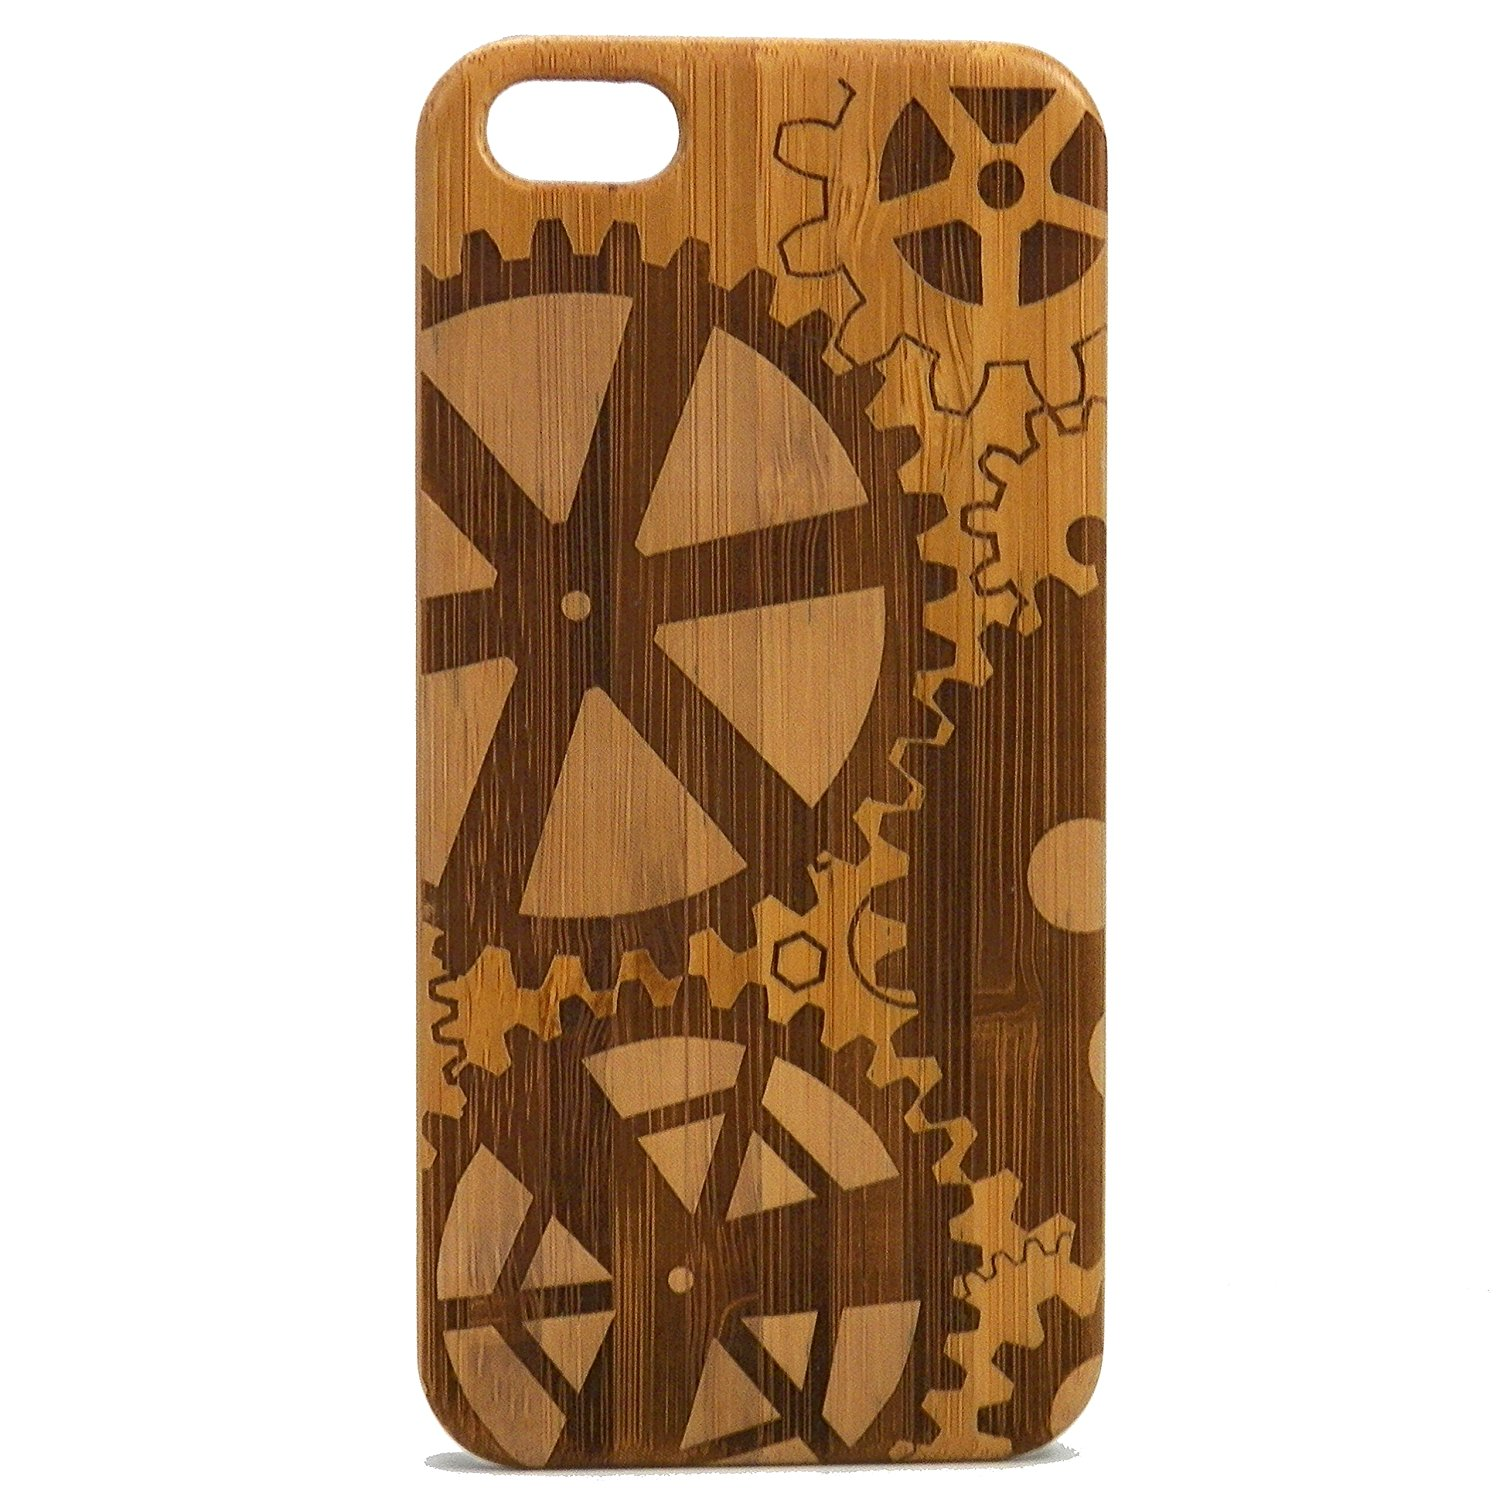 Steampunk Gears iPhone 6 Plus or iPhone 6S Plus Case Eco-Friendly Bamboo Wood Cover Skin. Mechanical Gear Cogs Watch Parts.